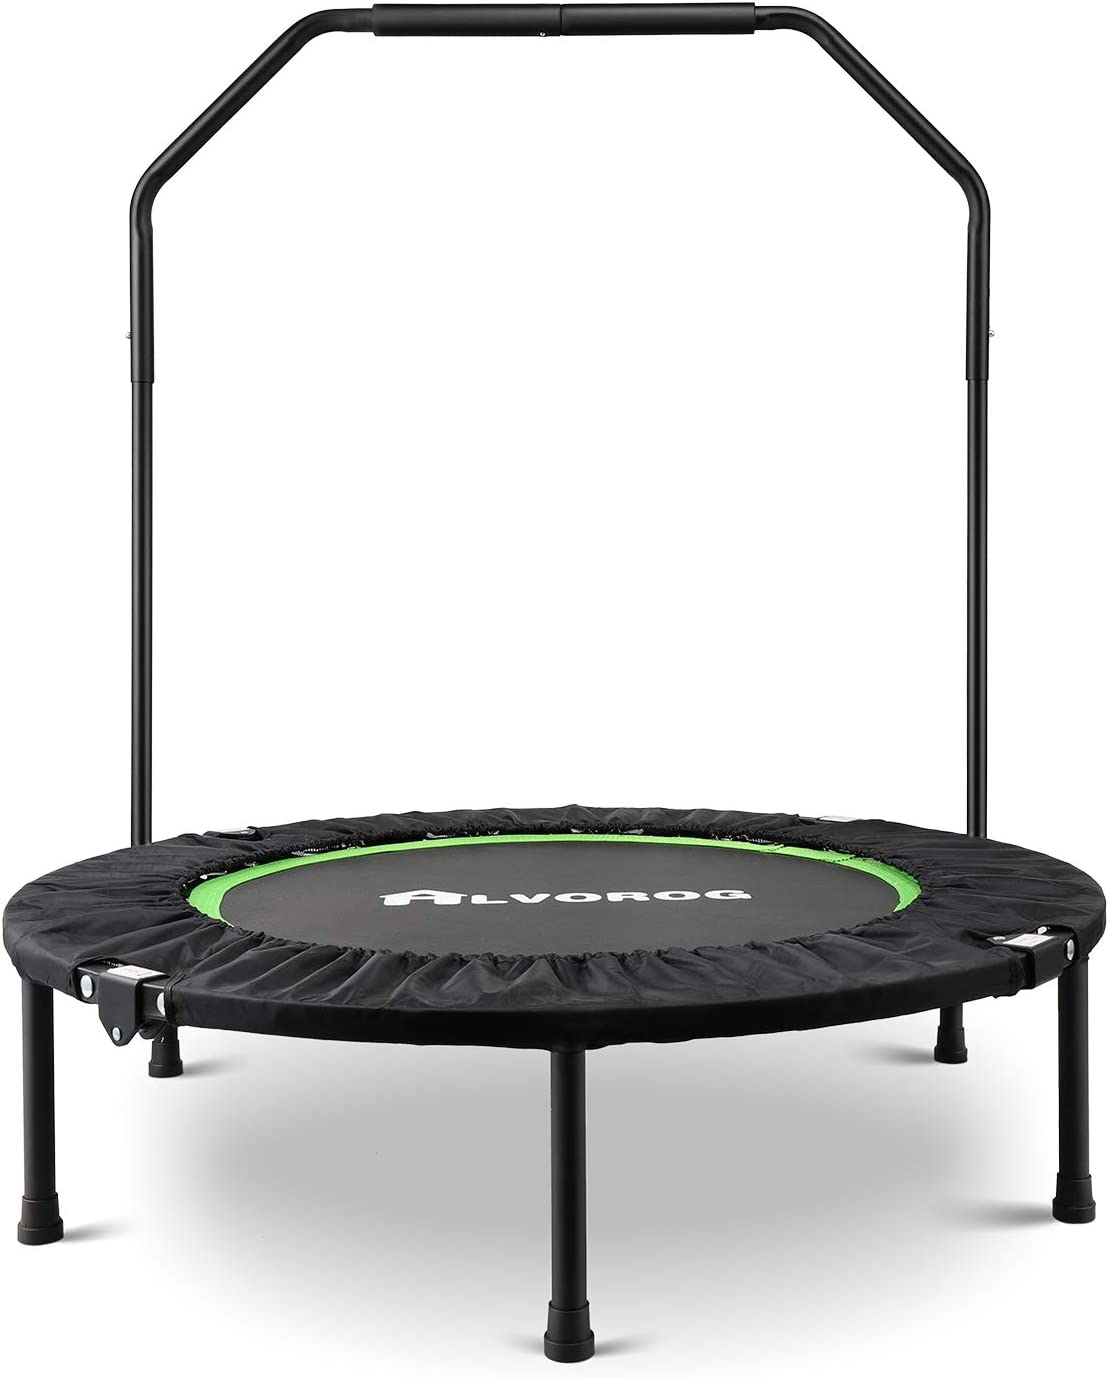 alvorog Fitness Exercise Trampoline with Handrail Portable Foldable Bungee Rebounder Cardio Workout Training Quiet and Safe for Adults Supports Up to 264 lbs